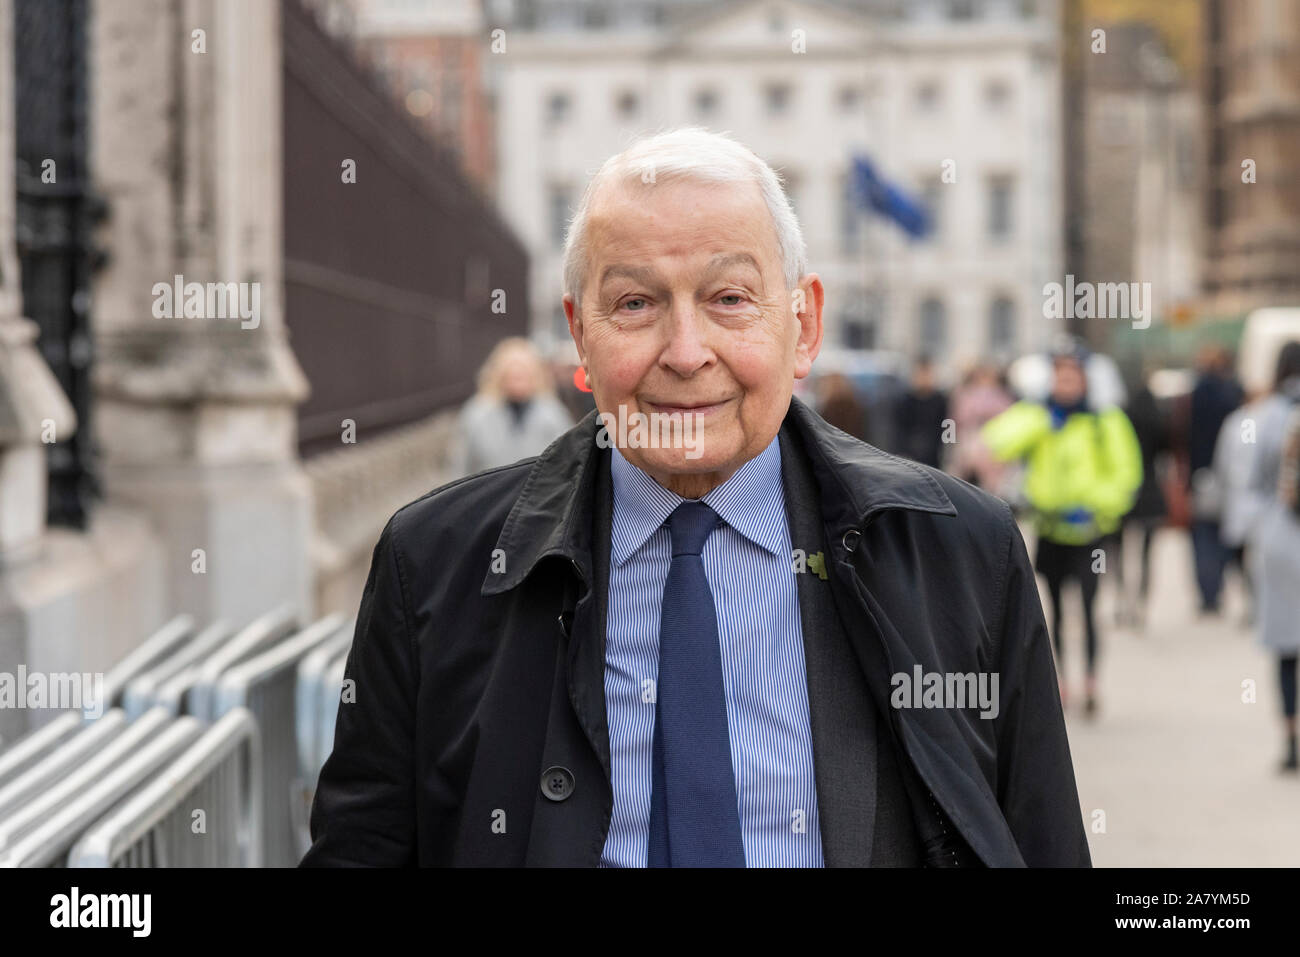 Westminster, London, UK. 5th Nov, 2019. Members of Parliament are arriving at the House of Commons for their last day of debates before Parliament is dissolved in preparation for the general election on 12th December, beginning a period known as 'purdah' when no major policy announcements or significant commitments will be made. Frank Field MP arriving Stock Photo